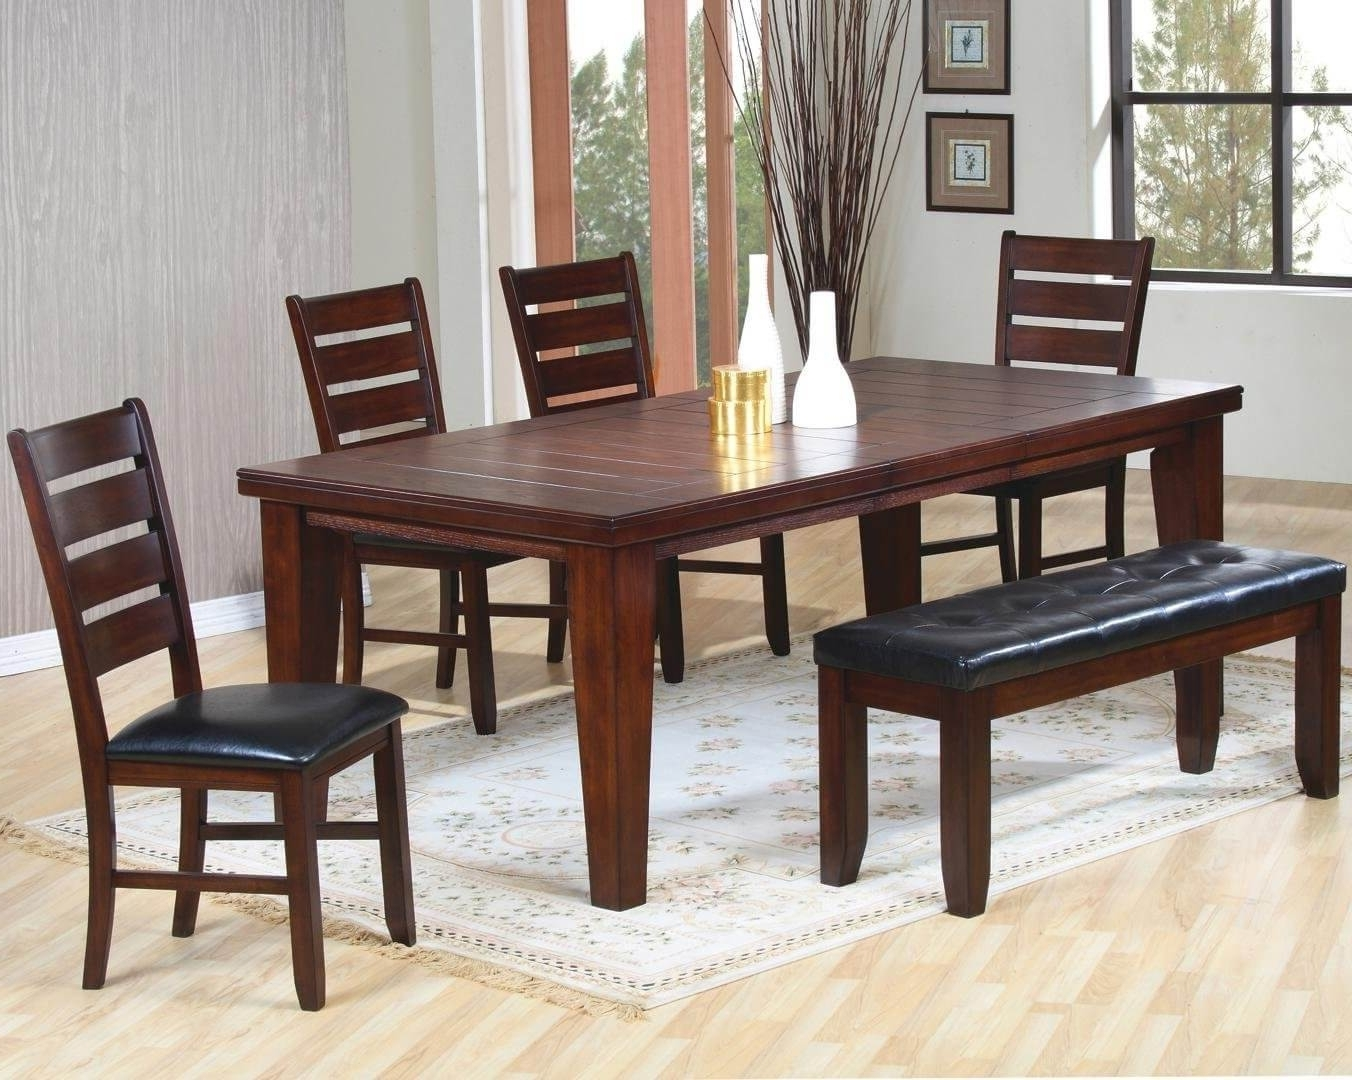 Most Recent Cheap Oak Dining Sets Inside 26 Dining Room Sets (Big And Small) With Bench Seating (2018) (View 19 of 25)